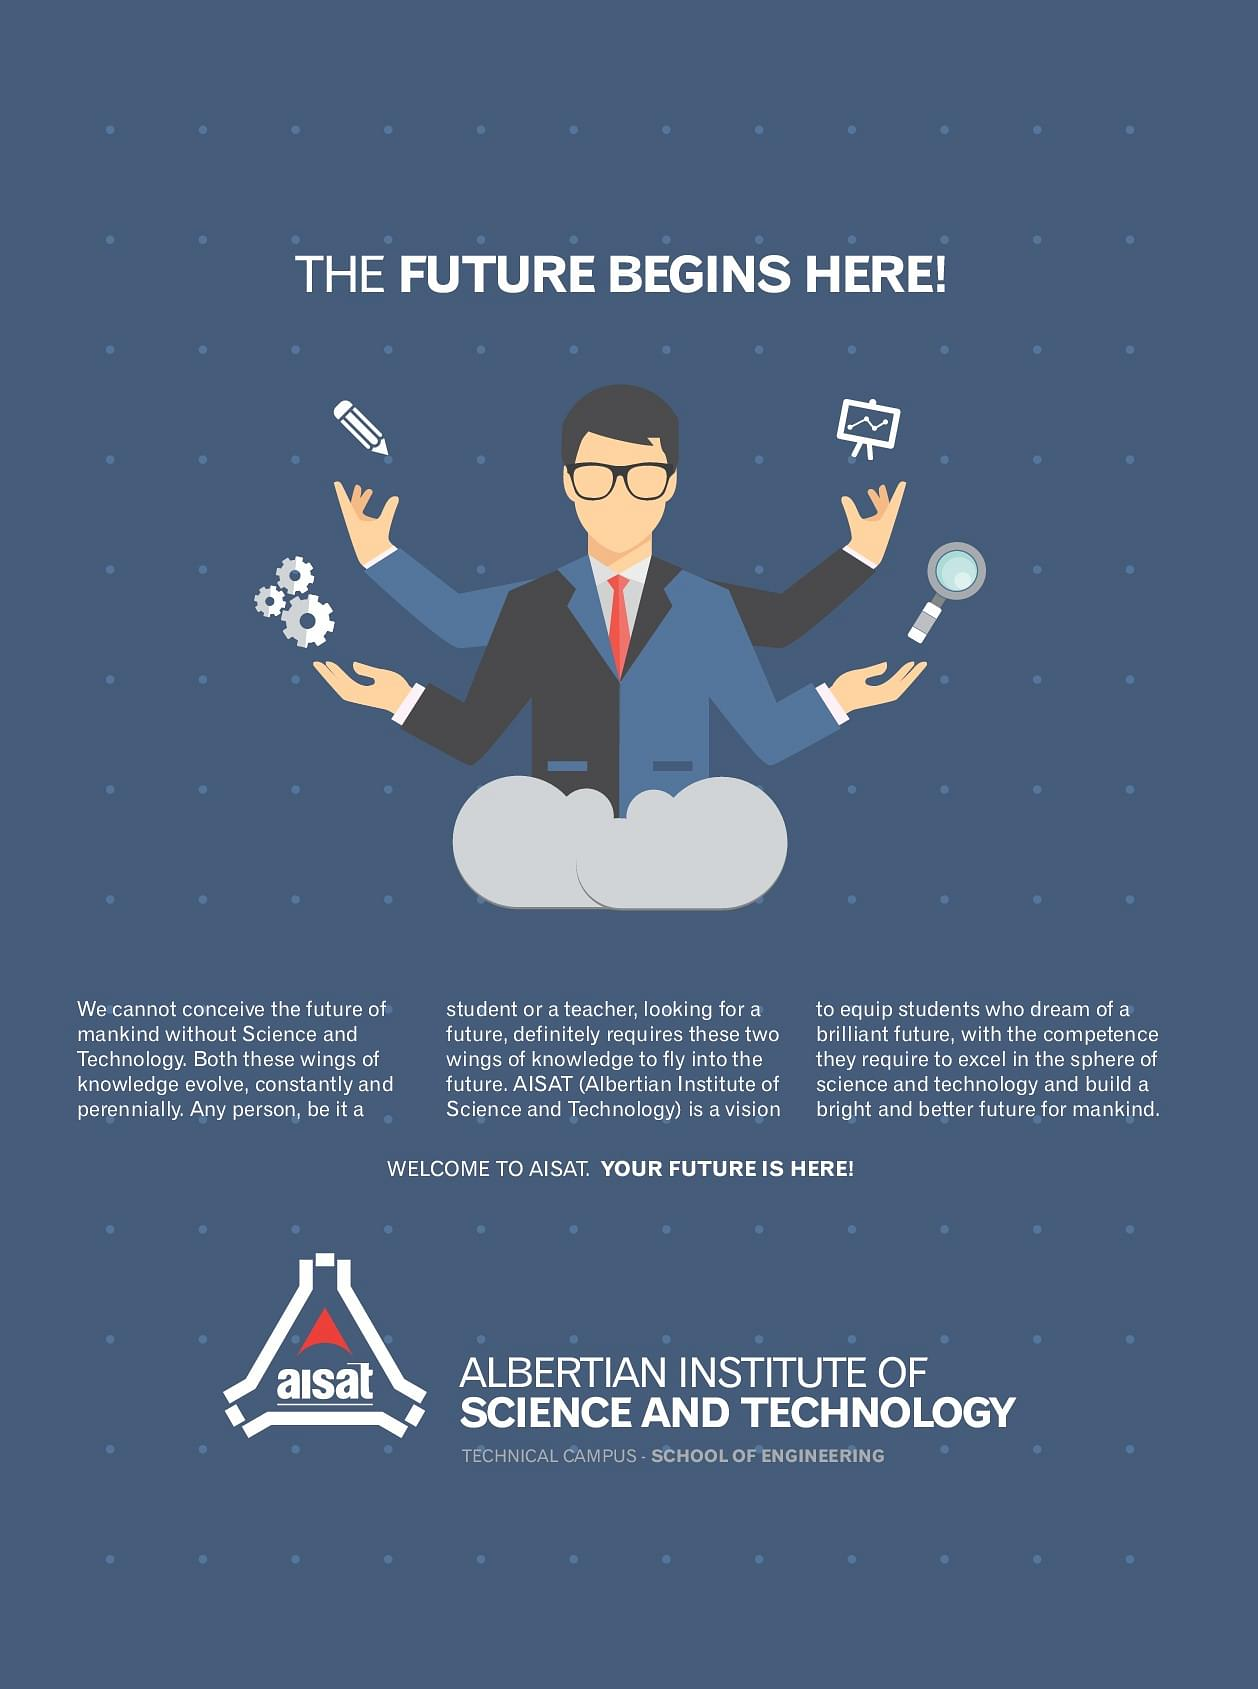 Albertian Institute of Science and Technology - [AISAT], Kochi